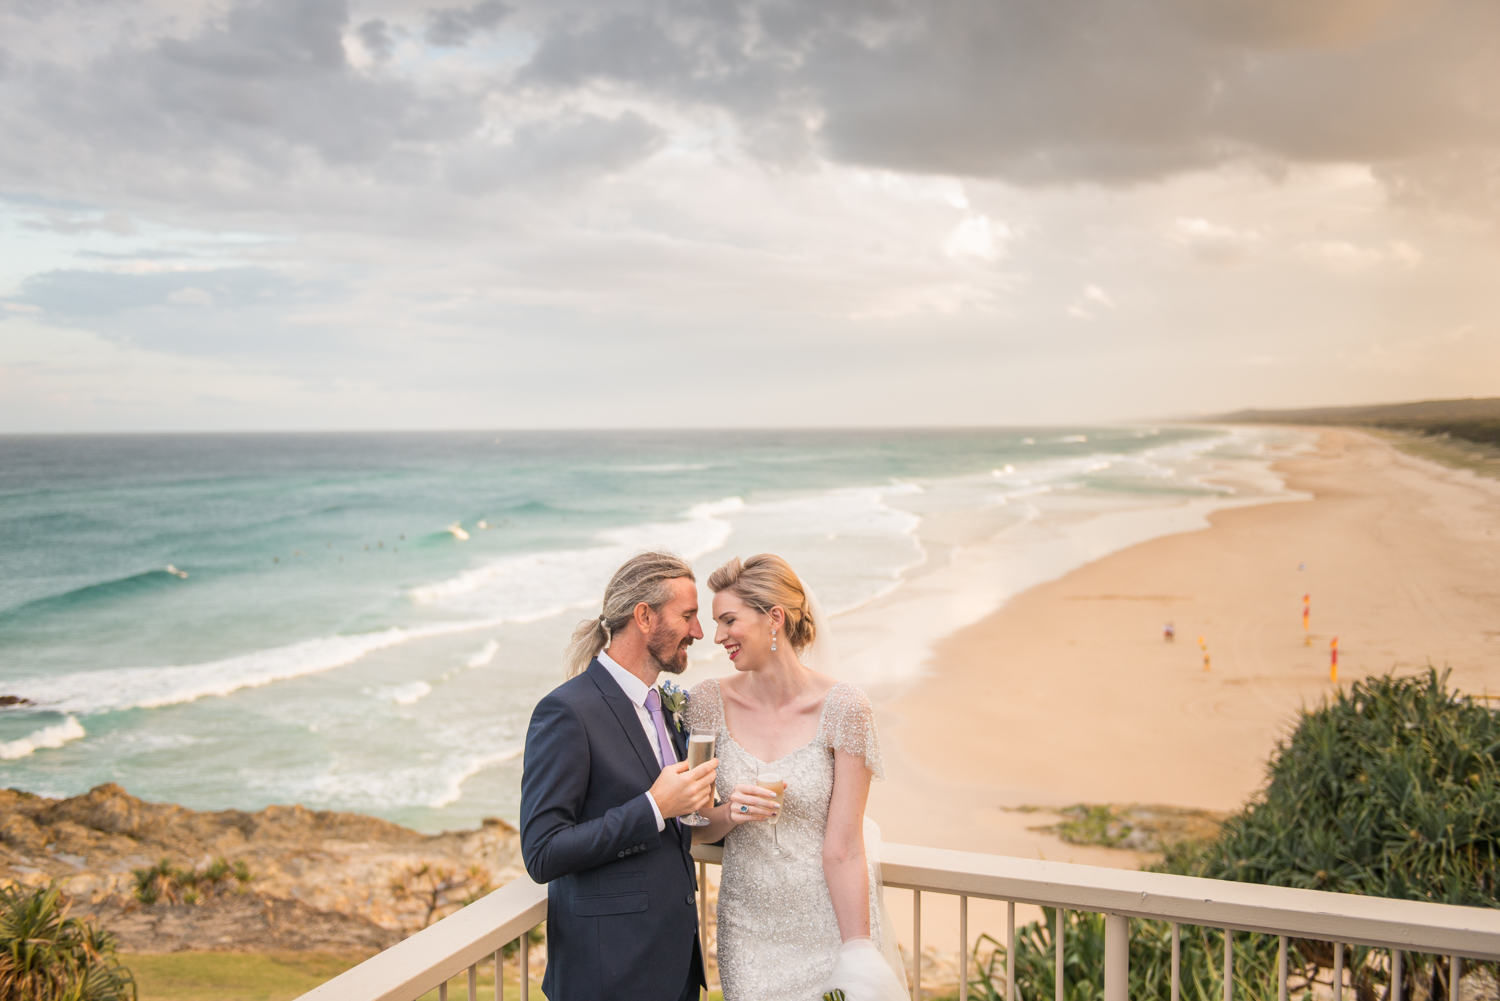 Afternoon light, what a delight for this Stradbroke wedding